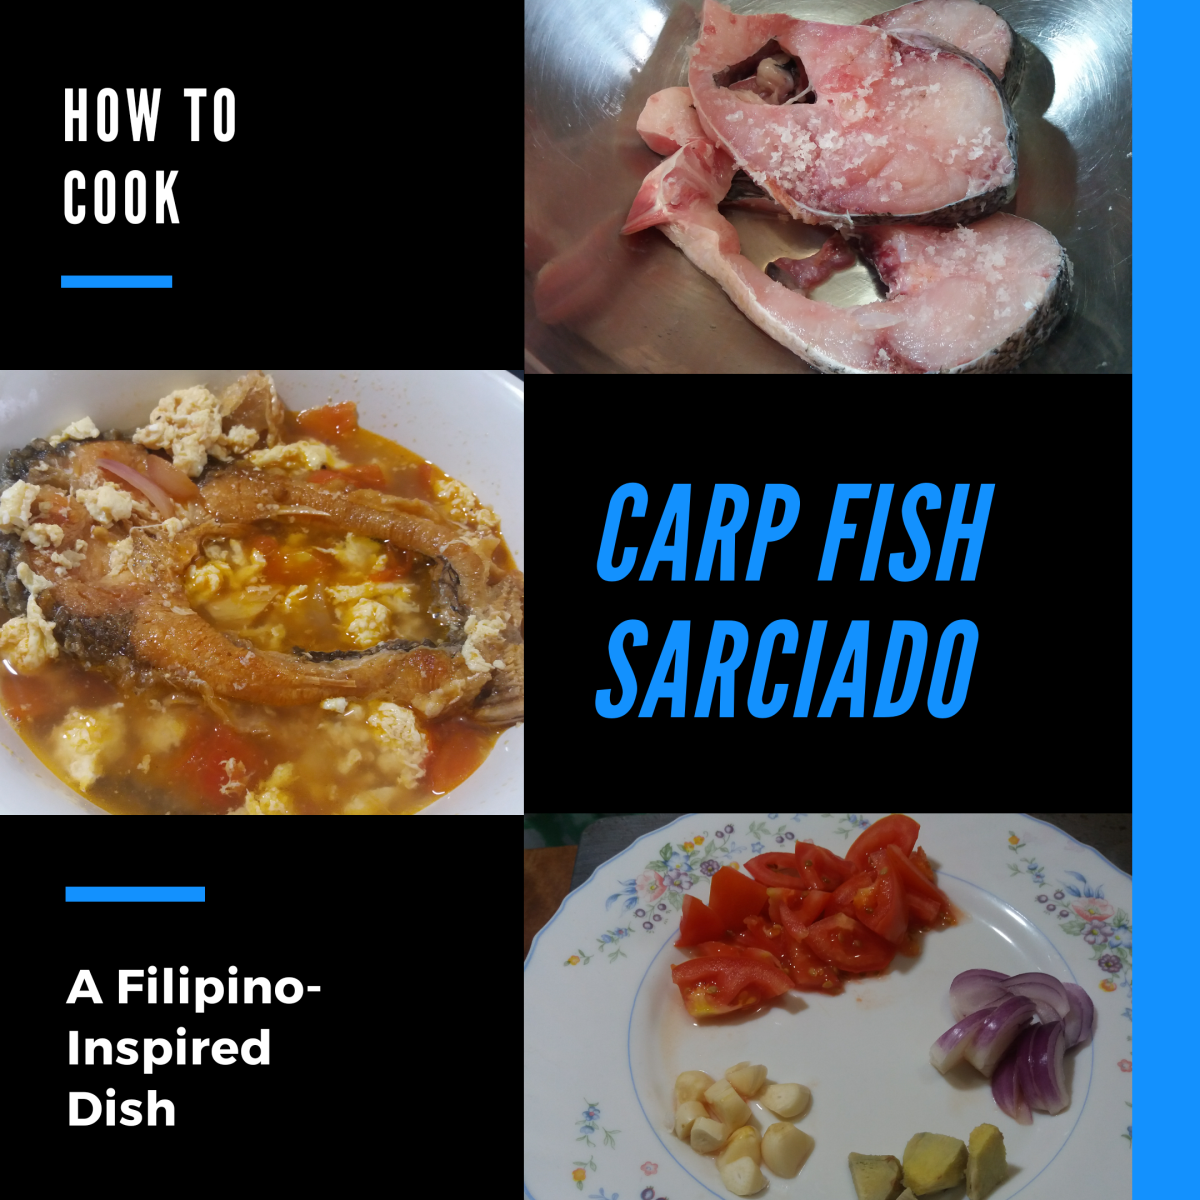 How to Cook Carp Fish Sarciado: A Filipino-Inspired Dish